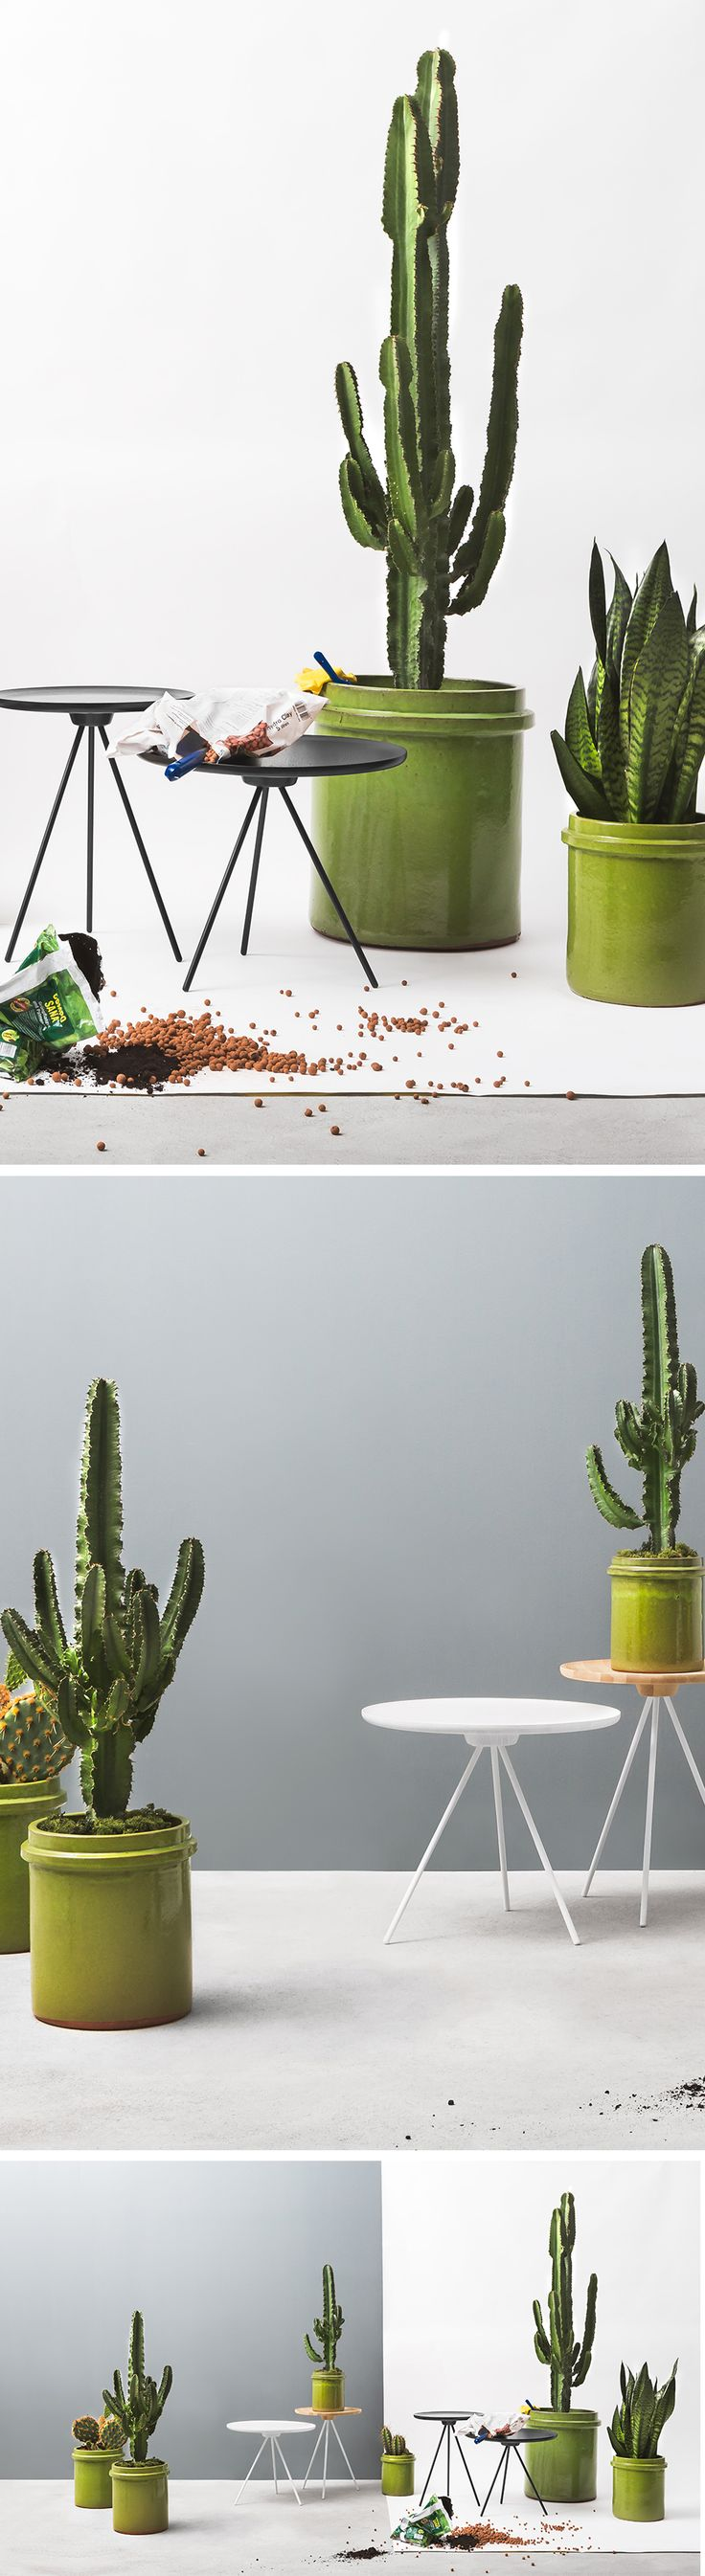 "We don't expect you to bring the garden party inside, but use your imagination – get a little wild and let the unusual texture and organic shape of cacti take centre stage. Opposites attract, and that's why we love chaotic greenery with Key's clean, laid-back elegance – a sharp, characterful combination for any home. Enjoy 15% off sitewide at Hem until June 30, 2015 by clicking to visit Hem from this Pin (Click ""visit site"" from web, or just click the image from mobile)."